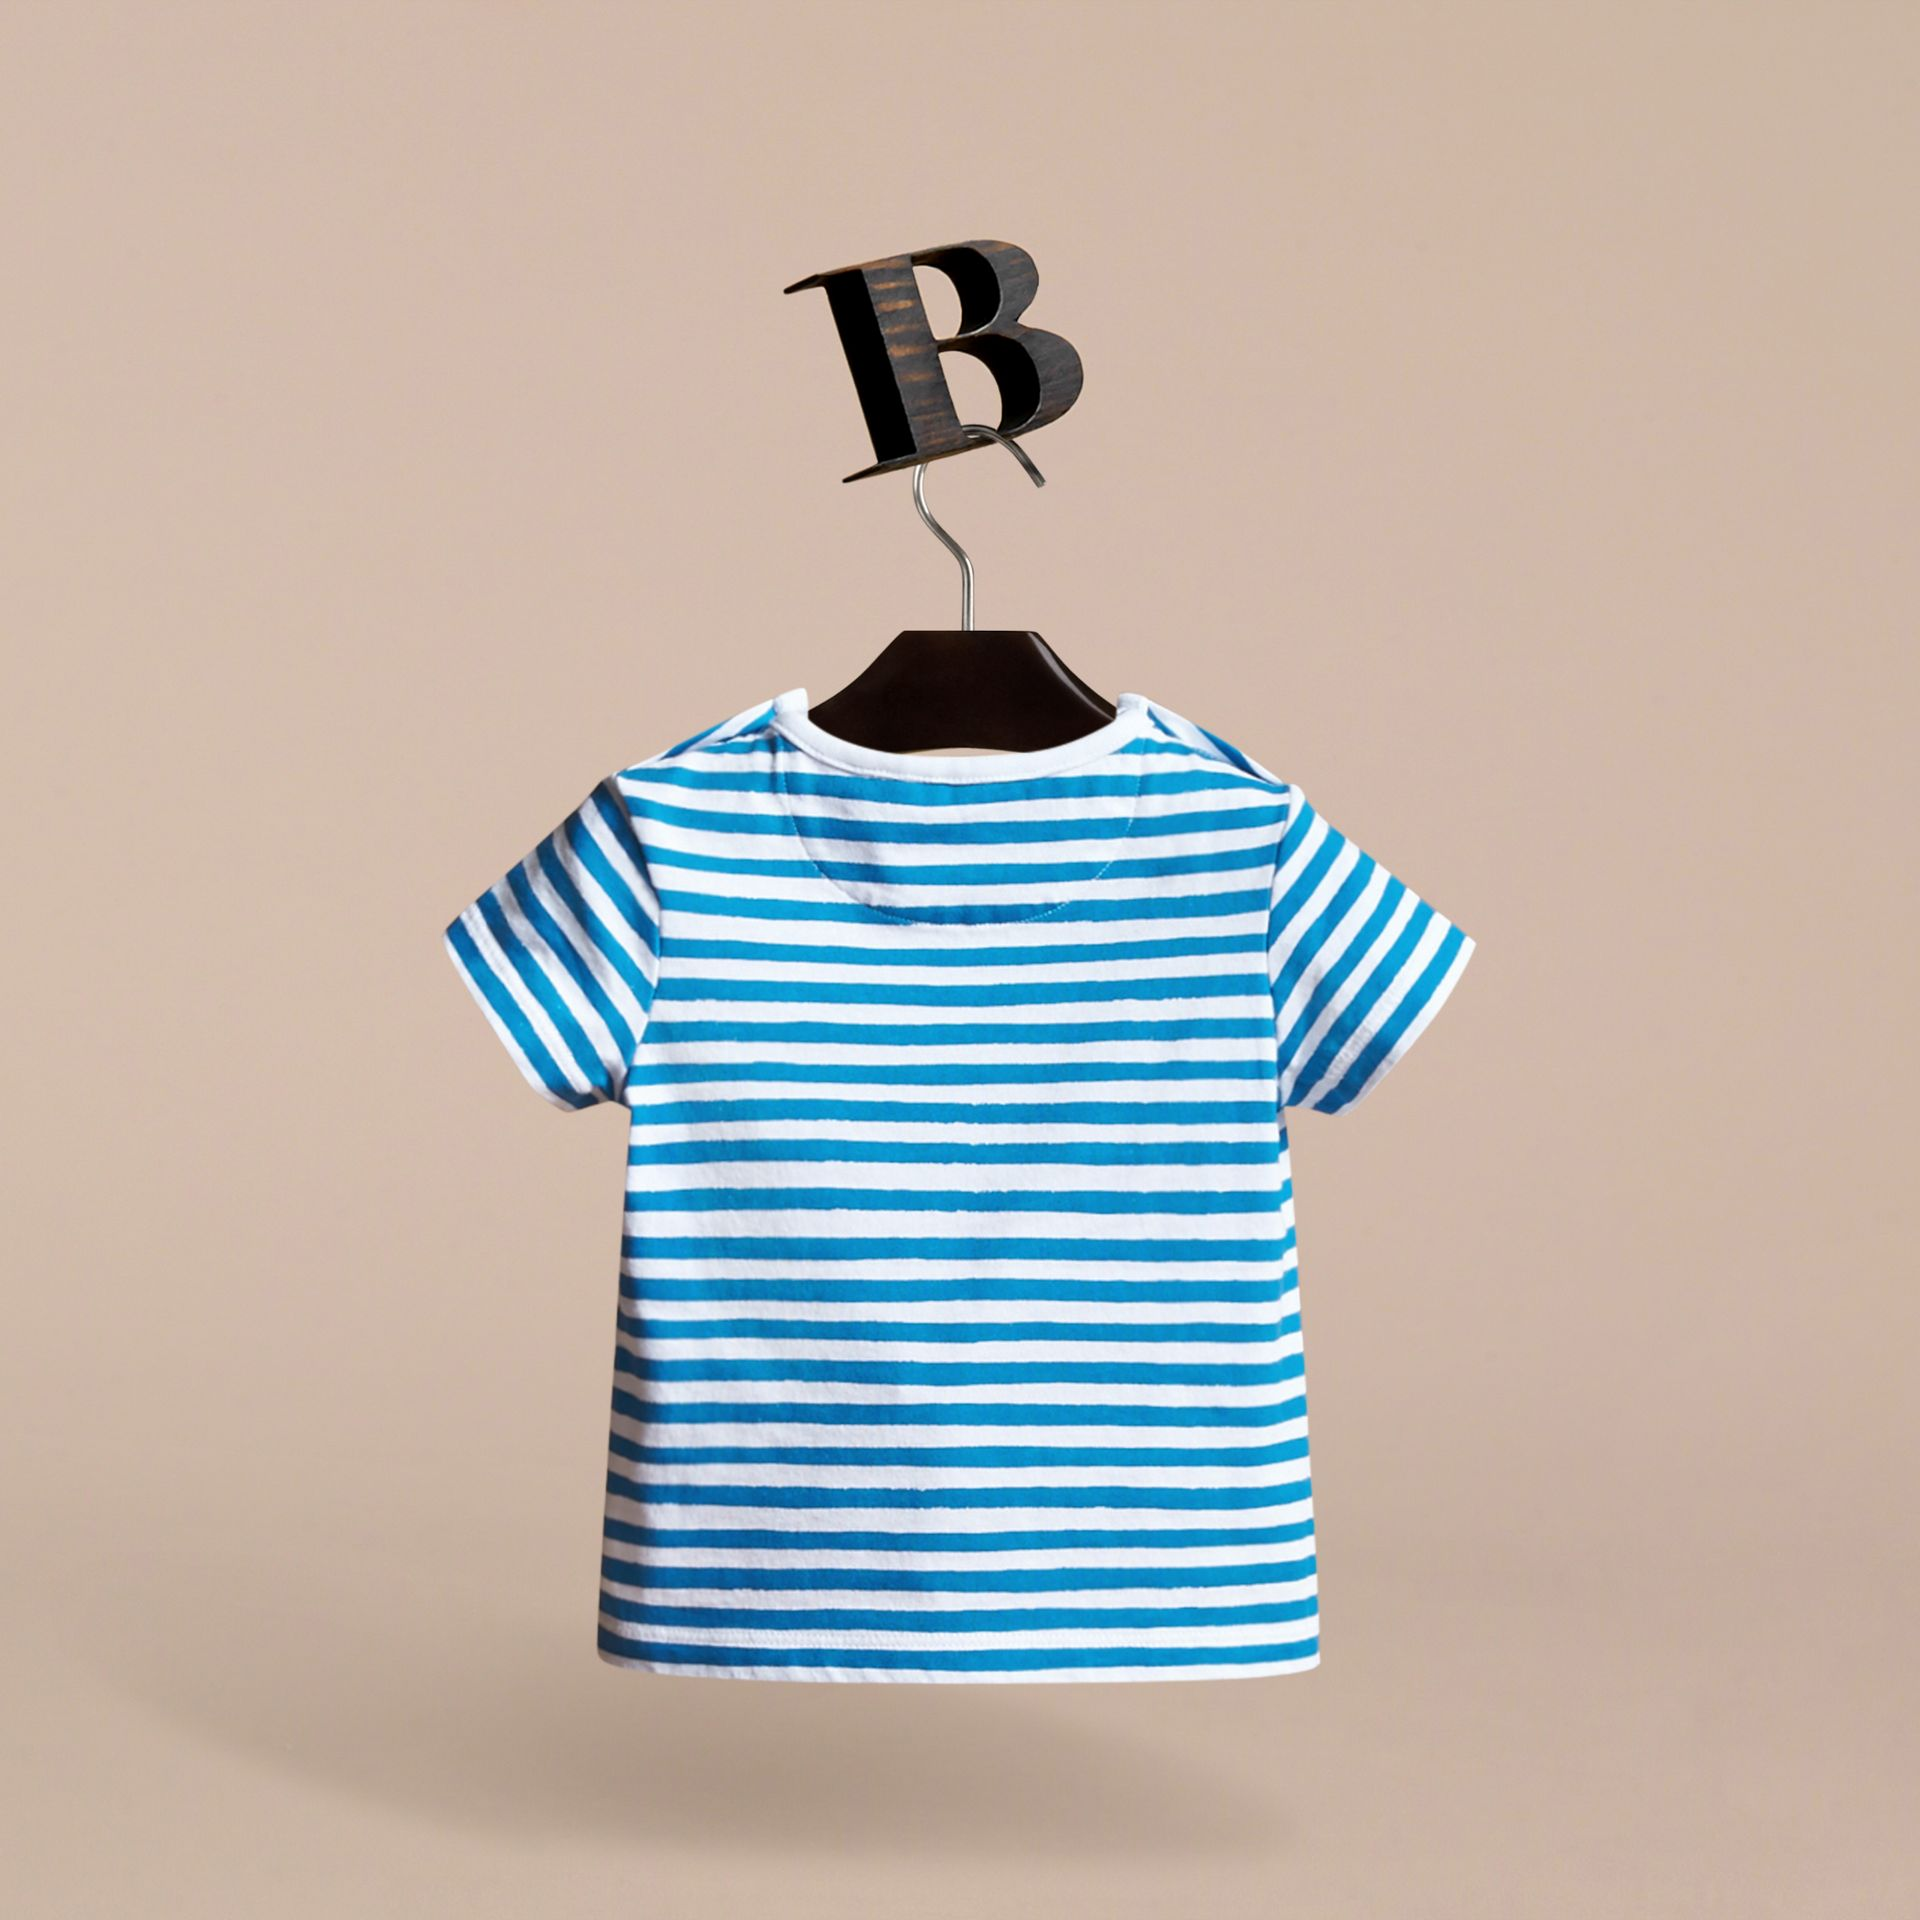 Pallas Heads Print Striped Cotton T-shirt in White | Burberry - gallery image 4